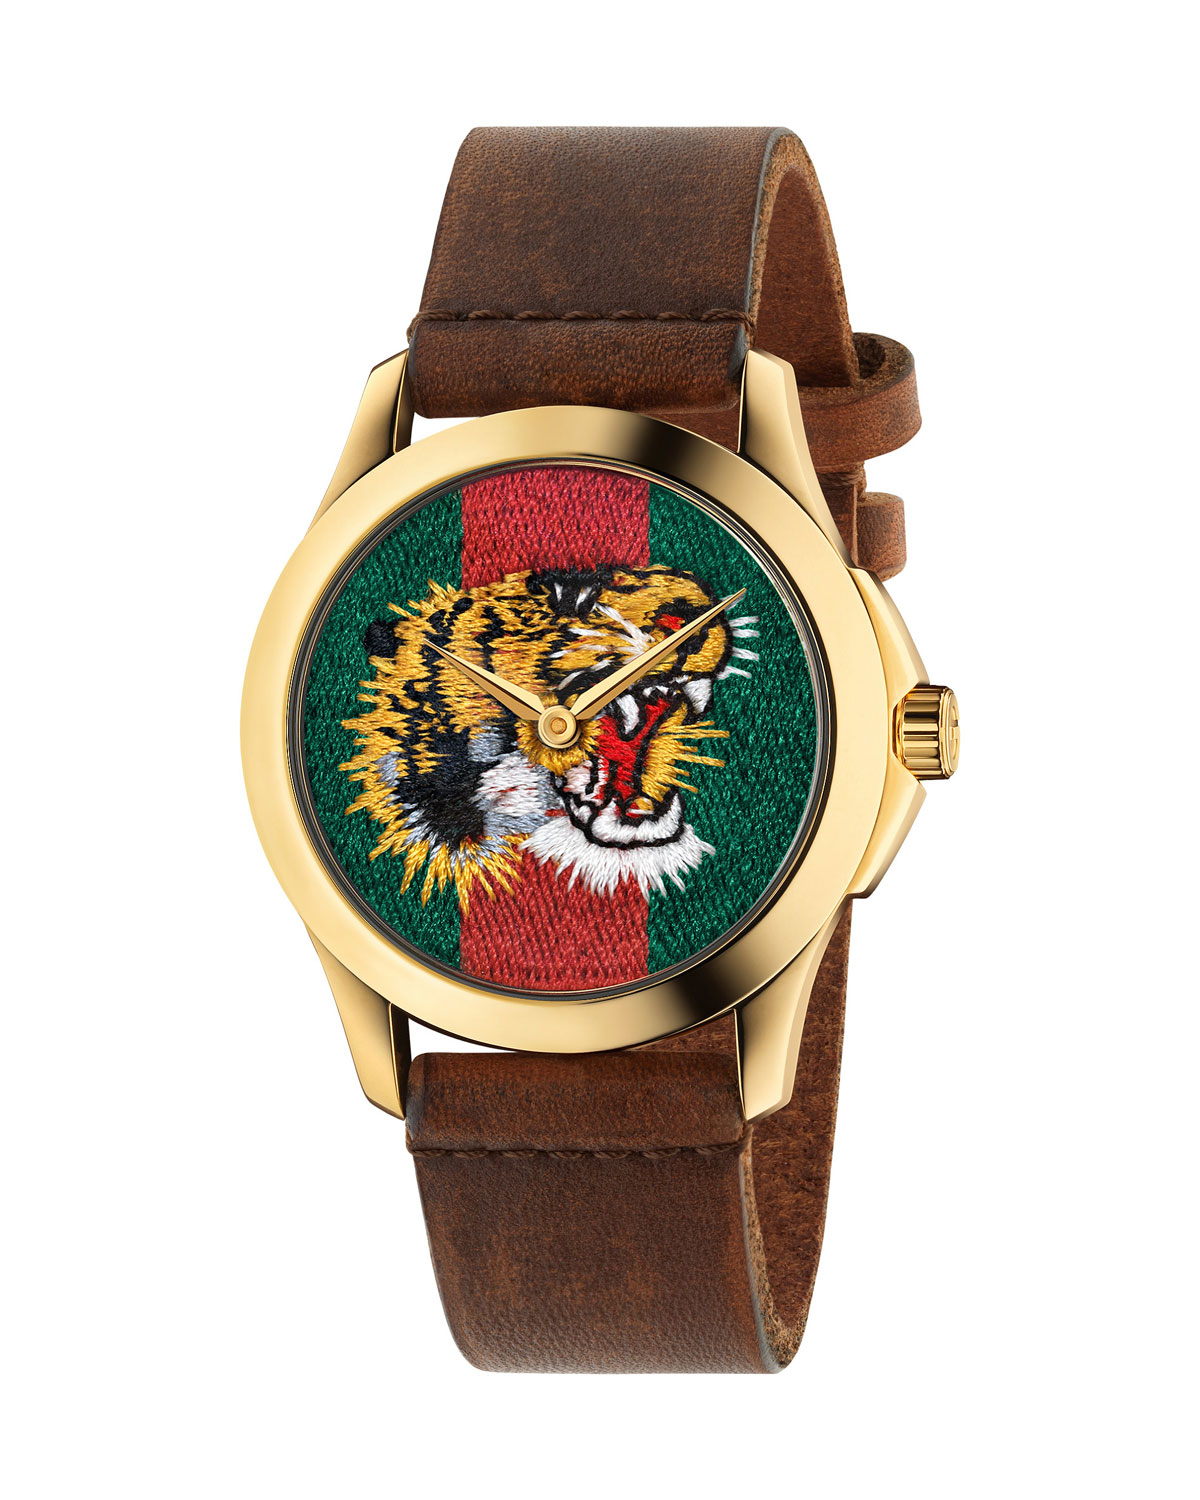 9af6a3d8ed4 Gucci 38mm Tiger Face Watch w  Leather Strap